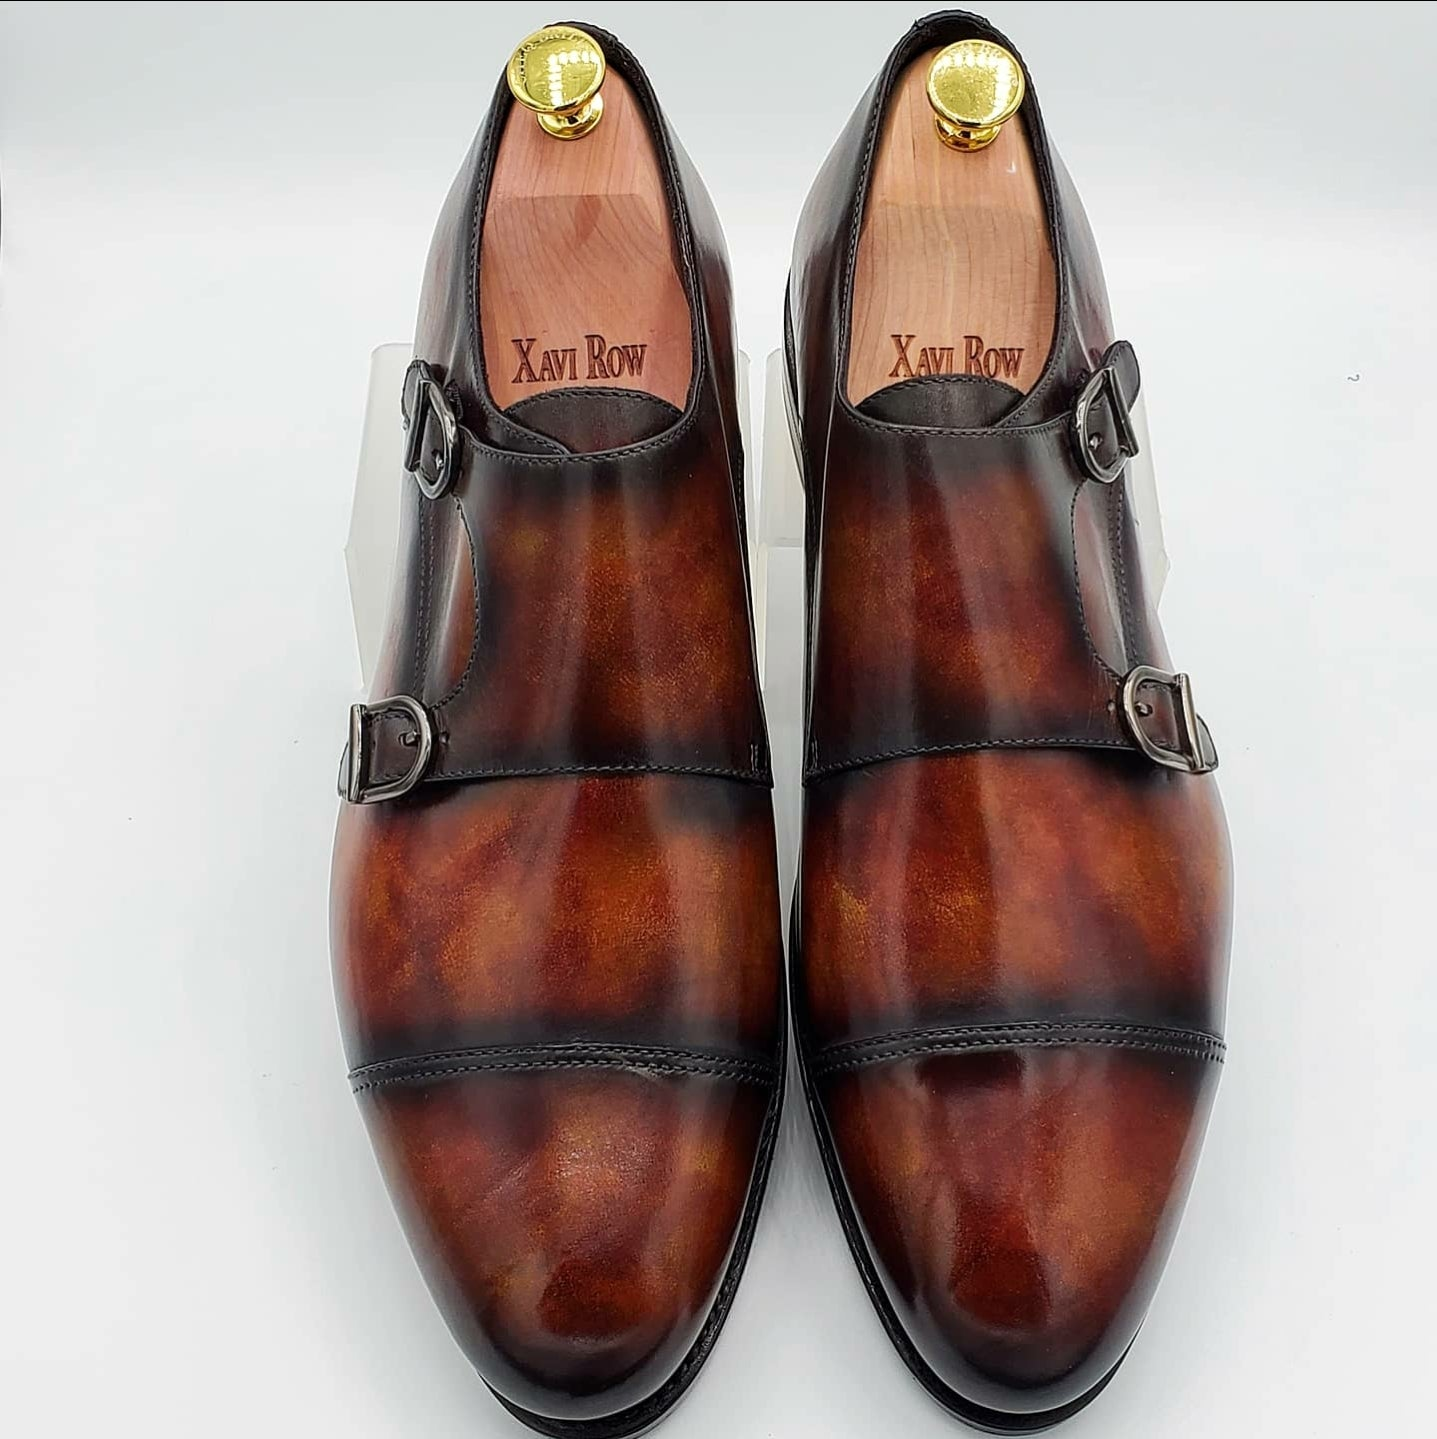 Xavi Cedar Wood Shoe Horns - Xavi Row Bespoke  - Shoe Horn - [xavi_row] - [bespoke] - [custom] - [black_owned]